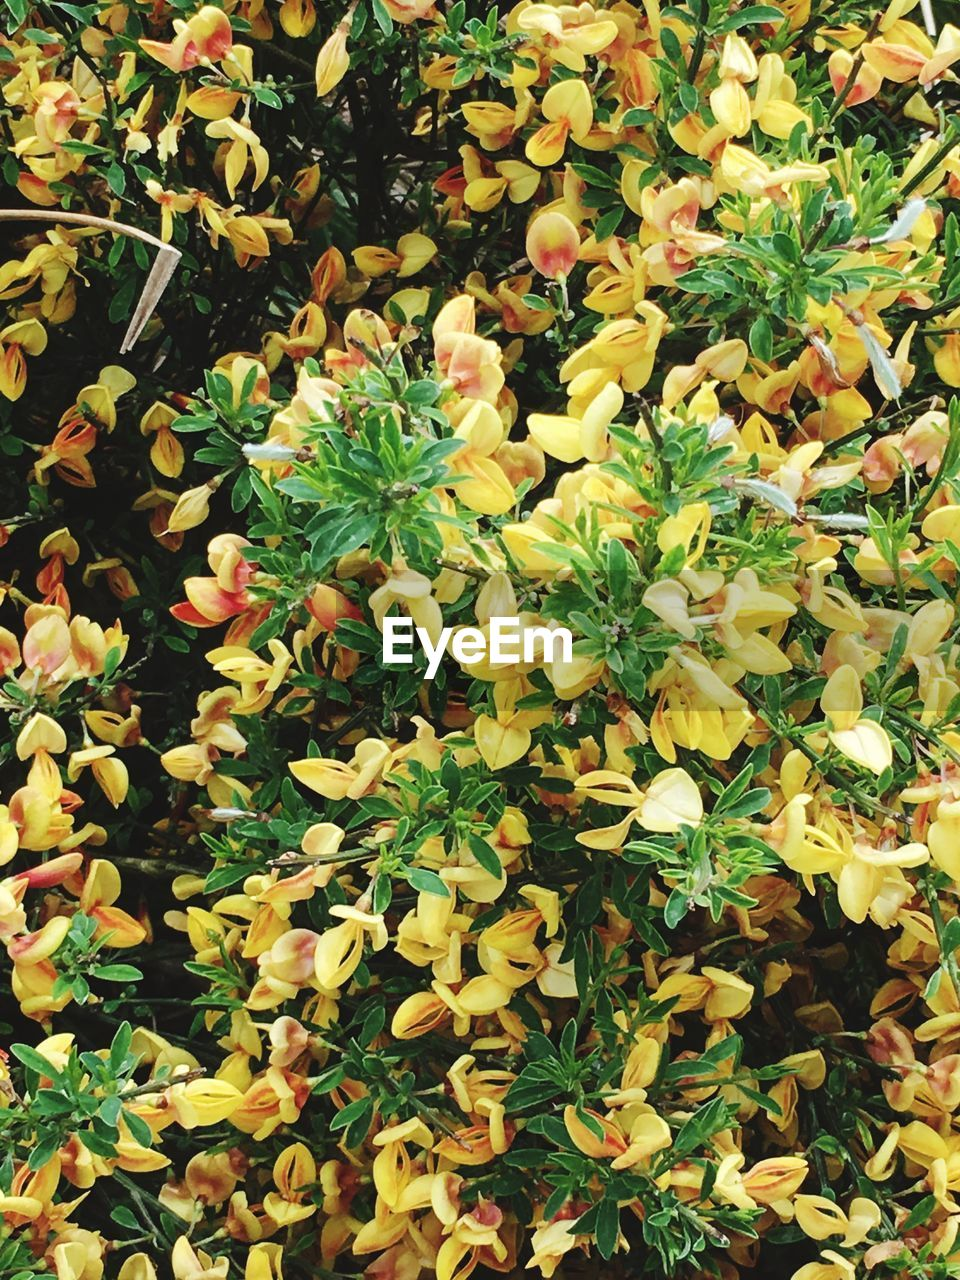 HIGH ANGLE VIEW OF YELLOW FLOWERING PLANT